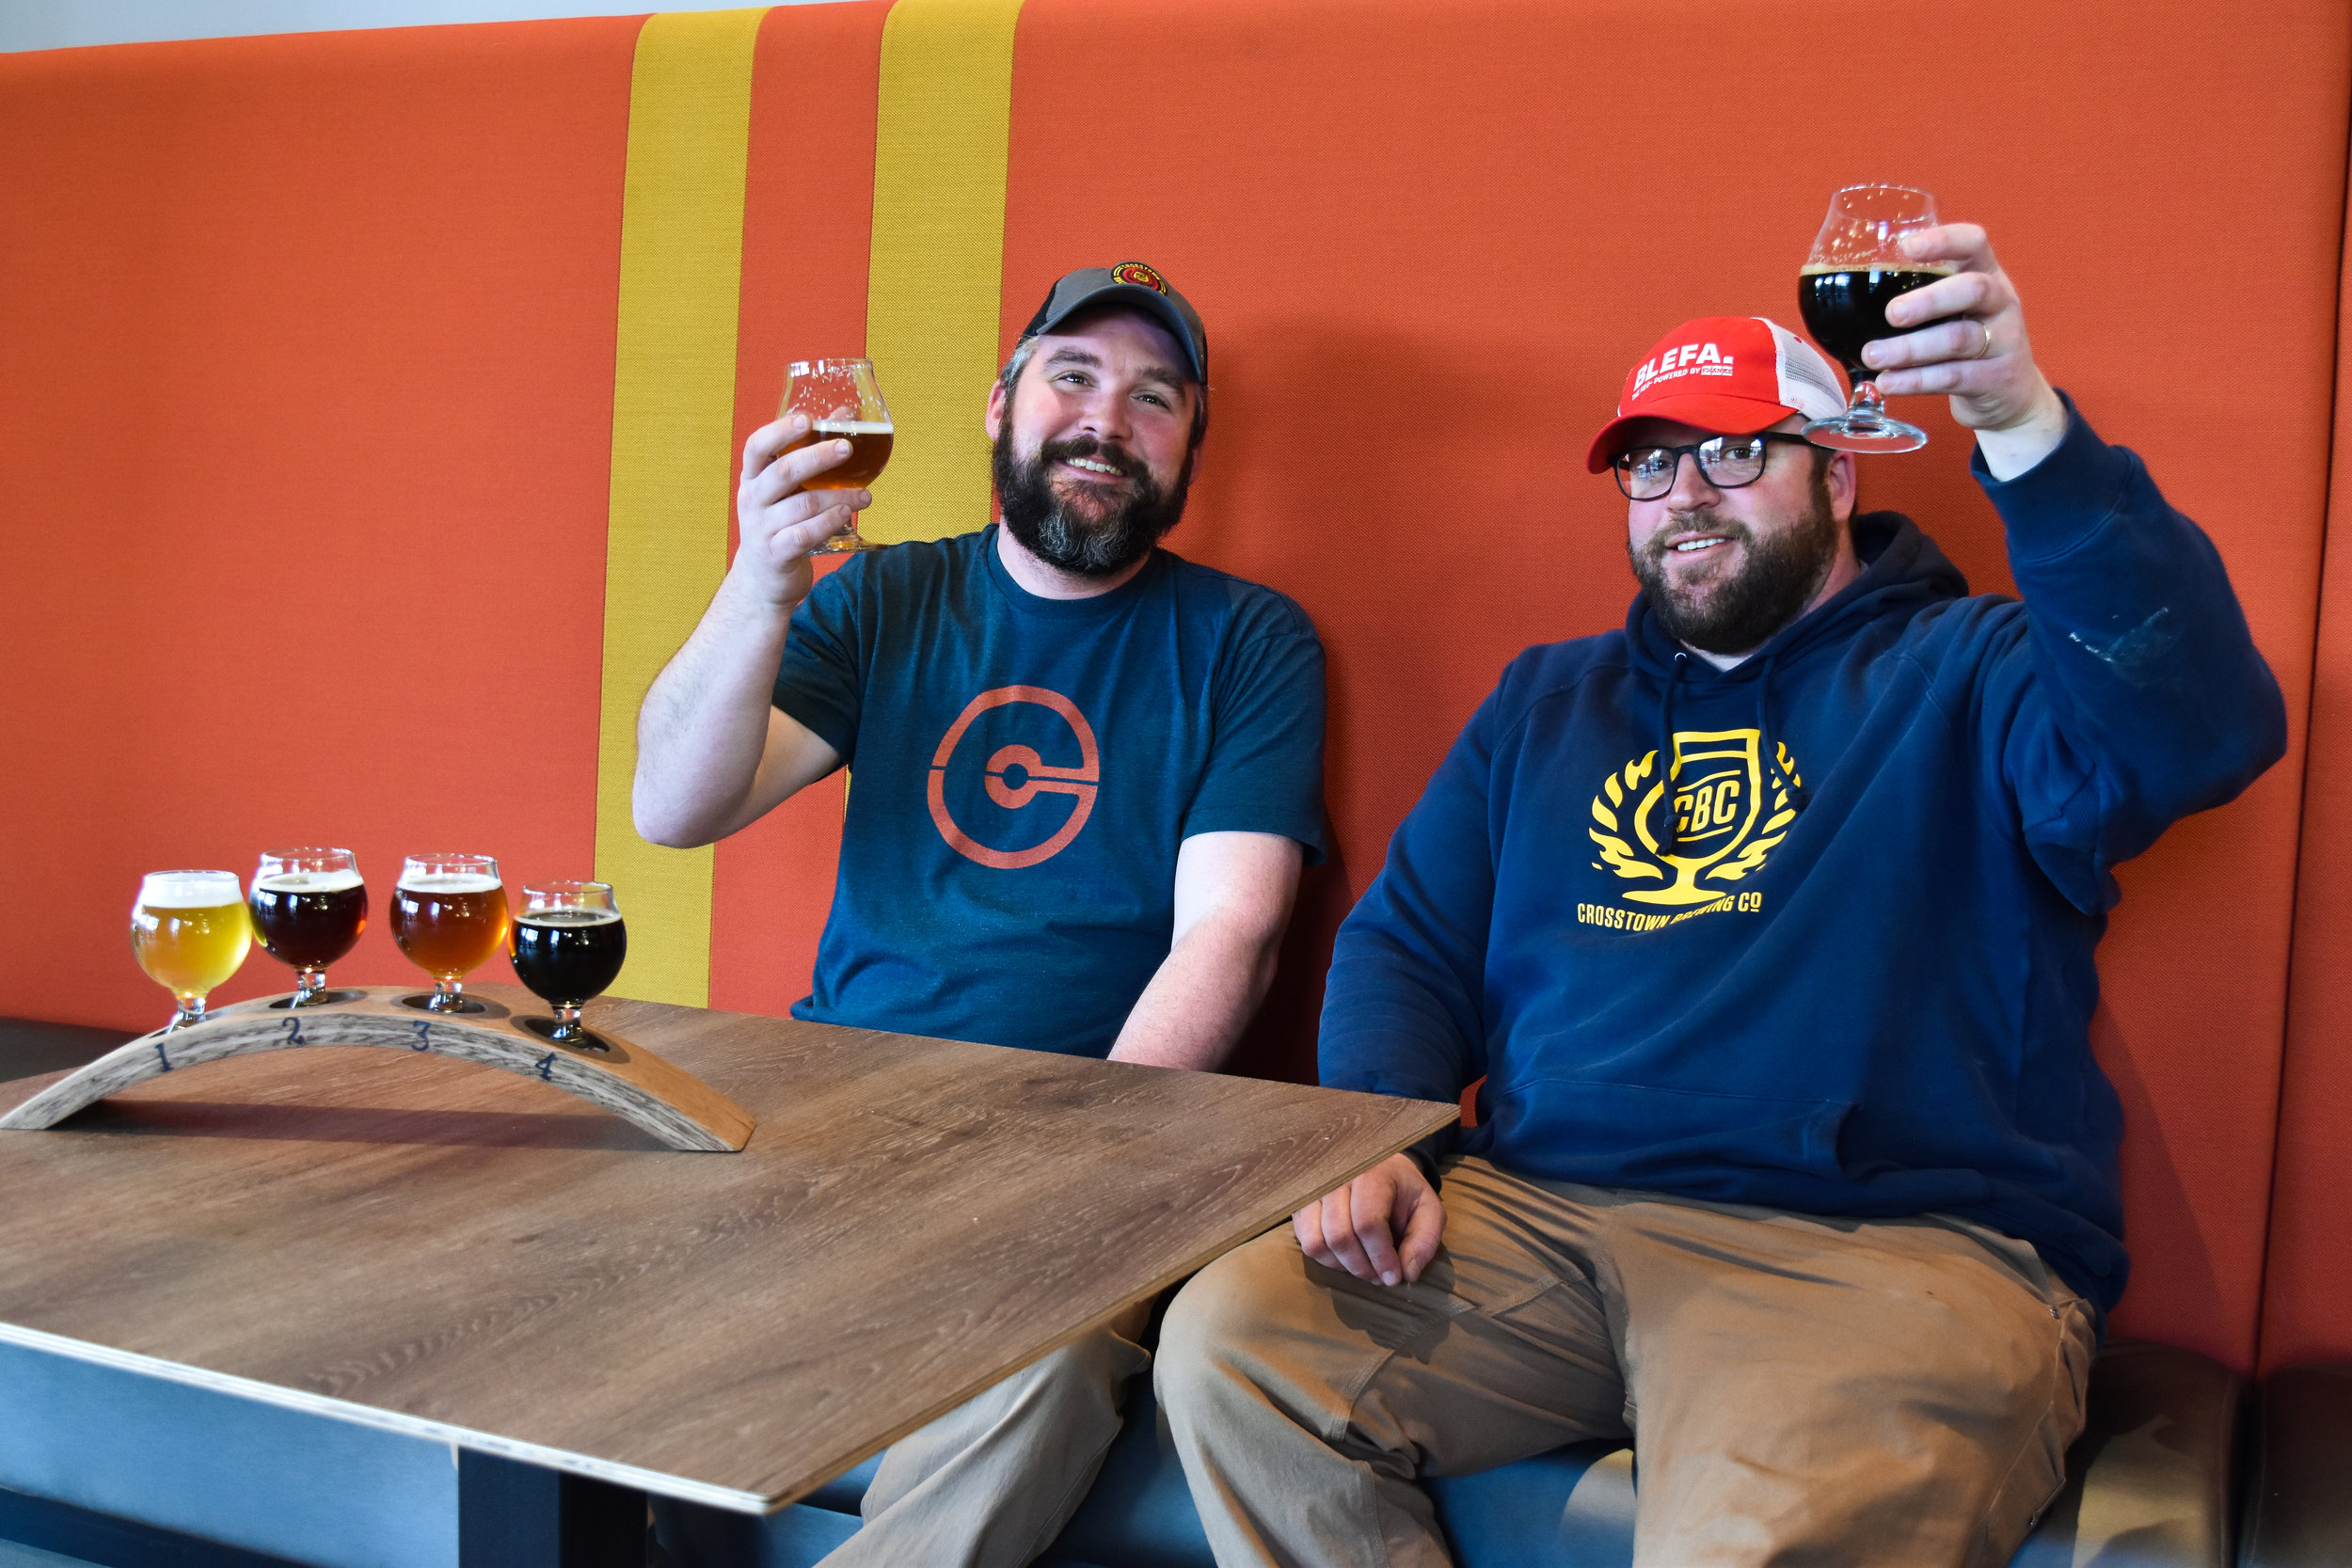 Will Goodwin & Clark Ortkiese / CROSSTOWN BREwing co., OWNERS & craftsmen